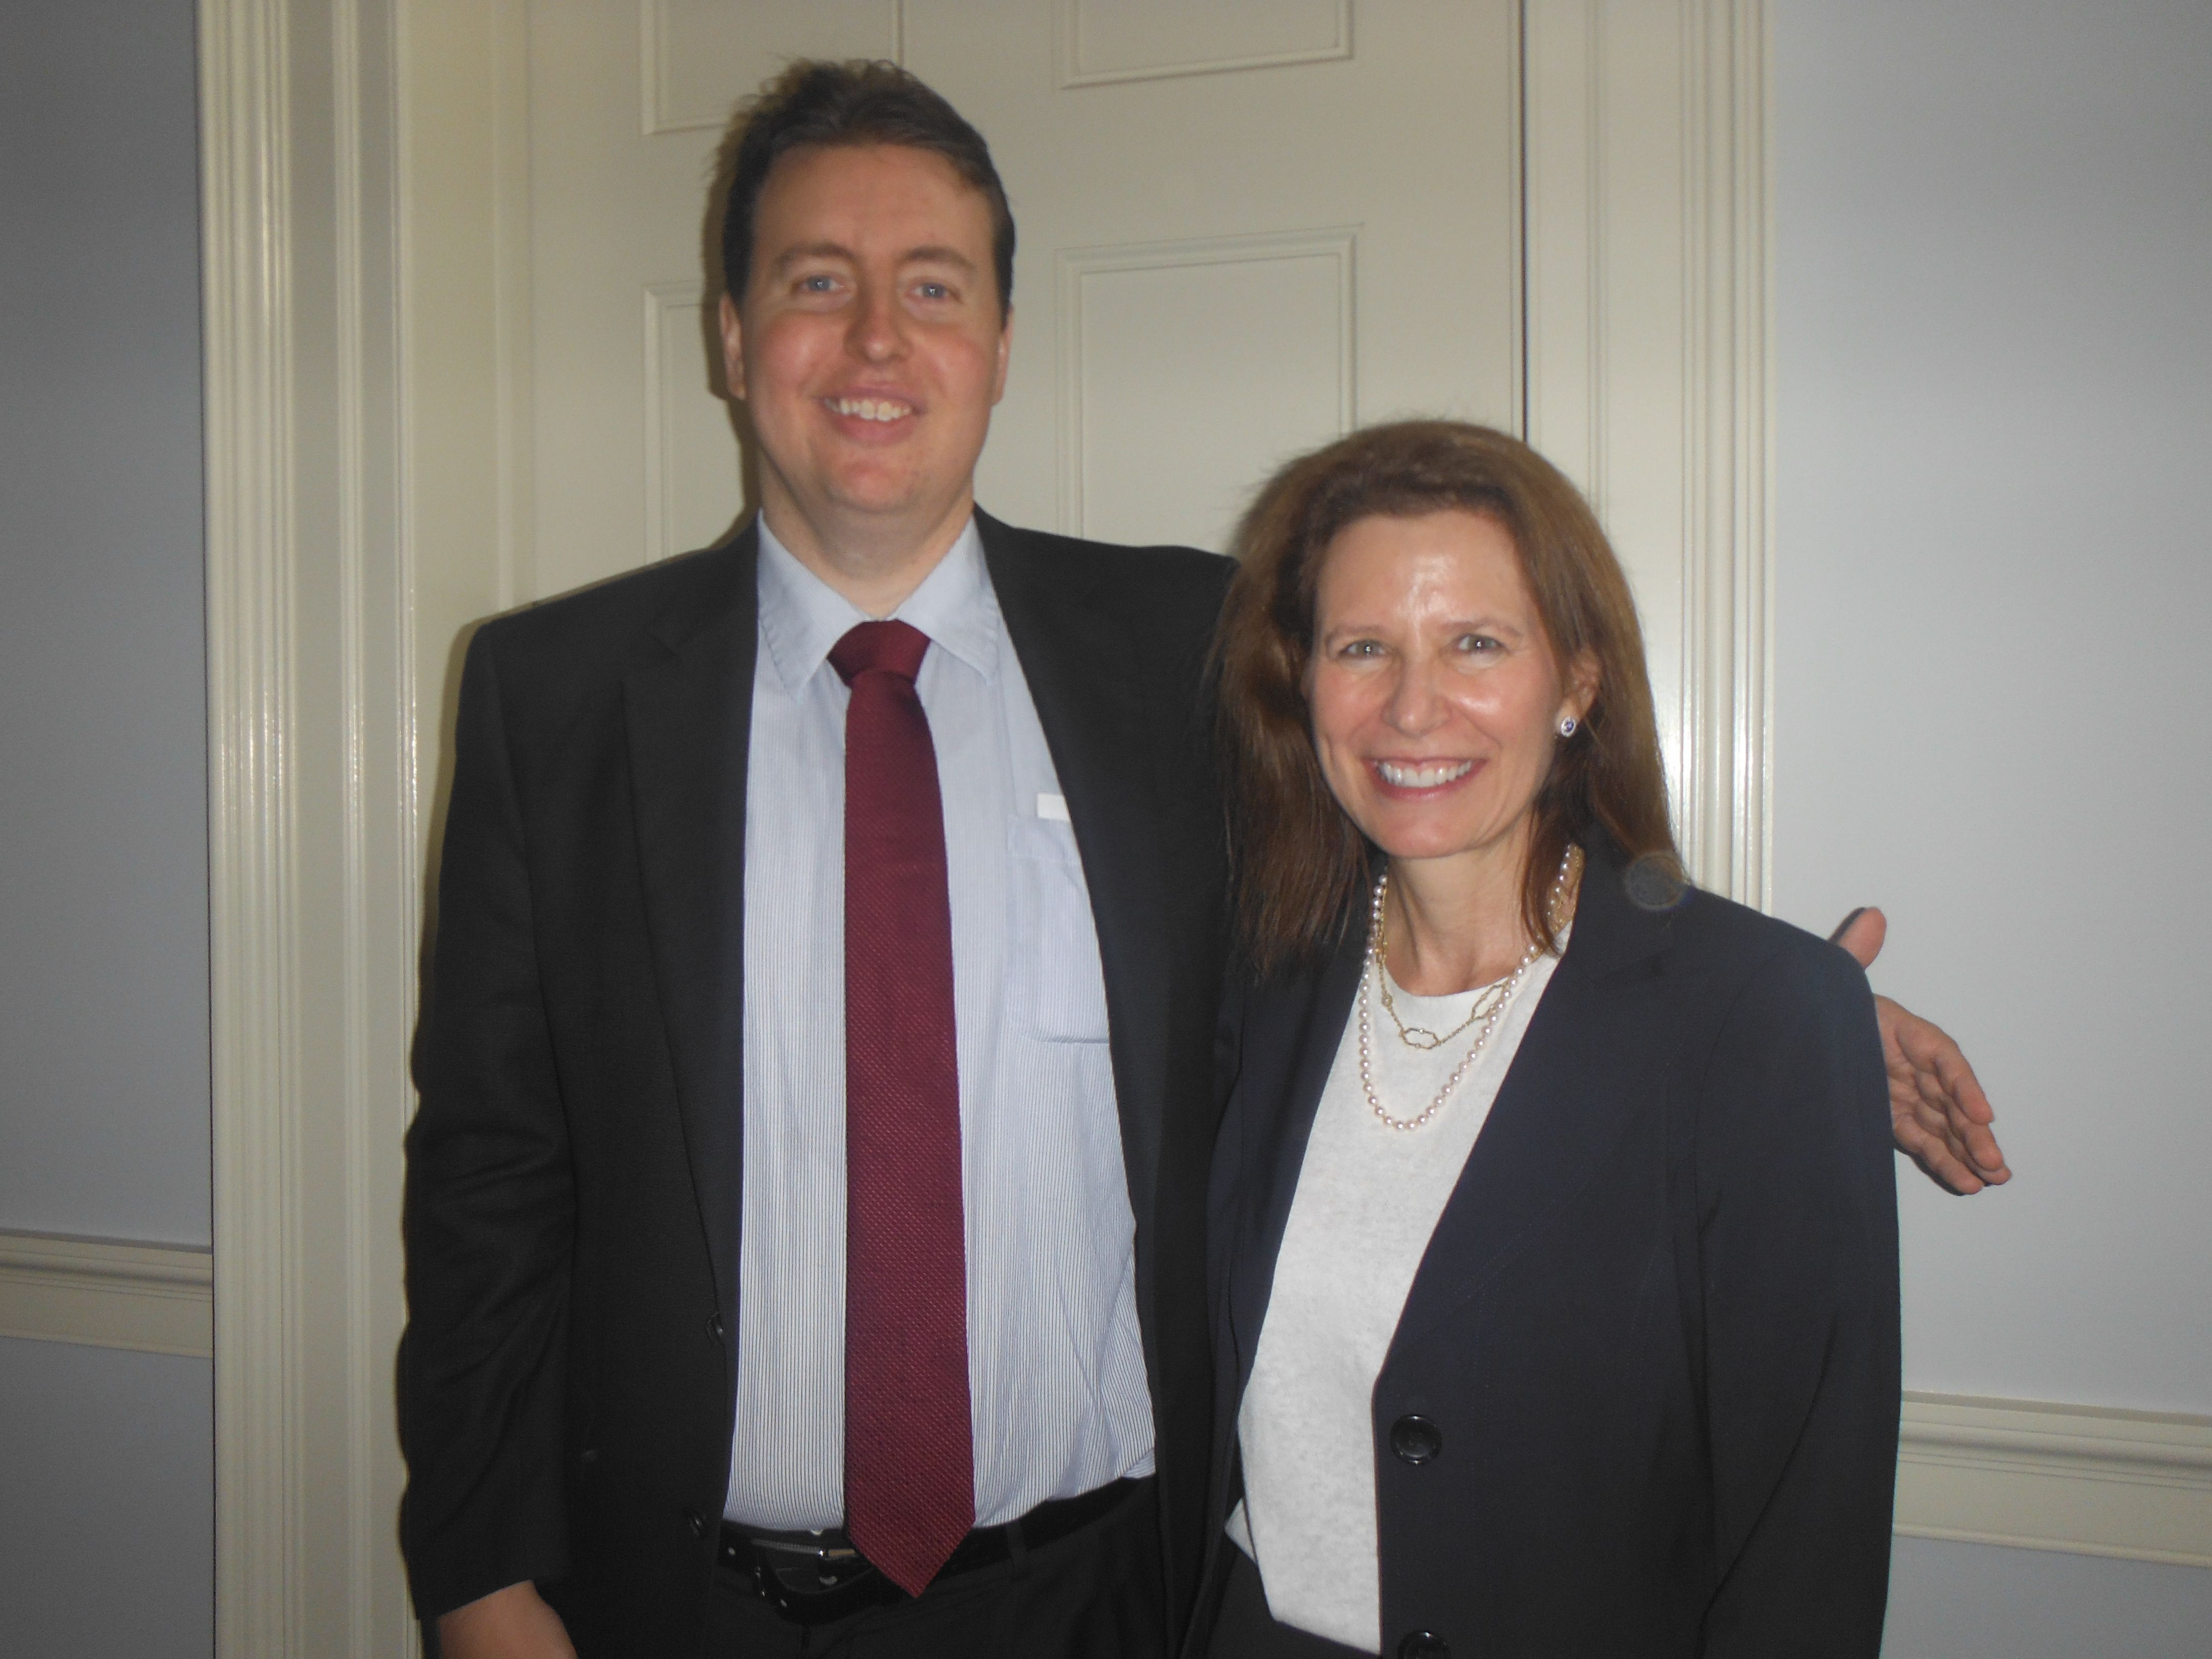 Attorney Evan Guthrie with Honorable Ellen Steinberg of South